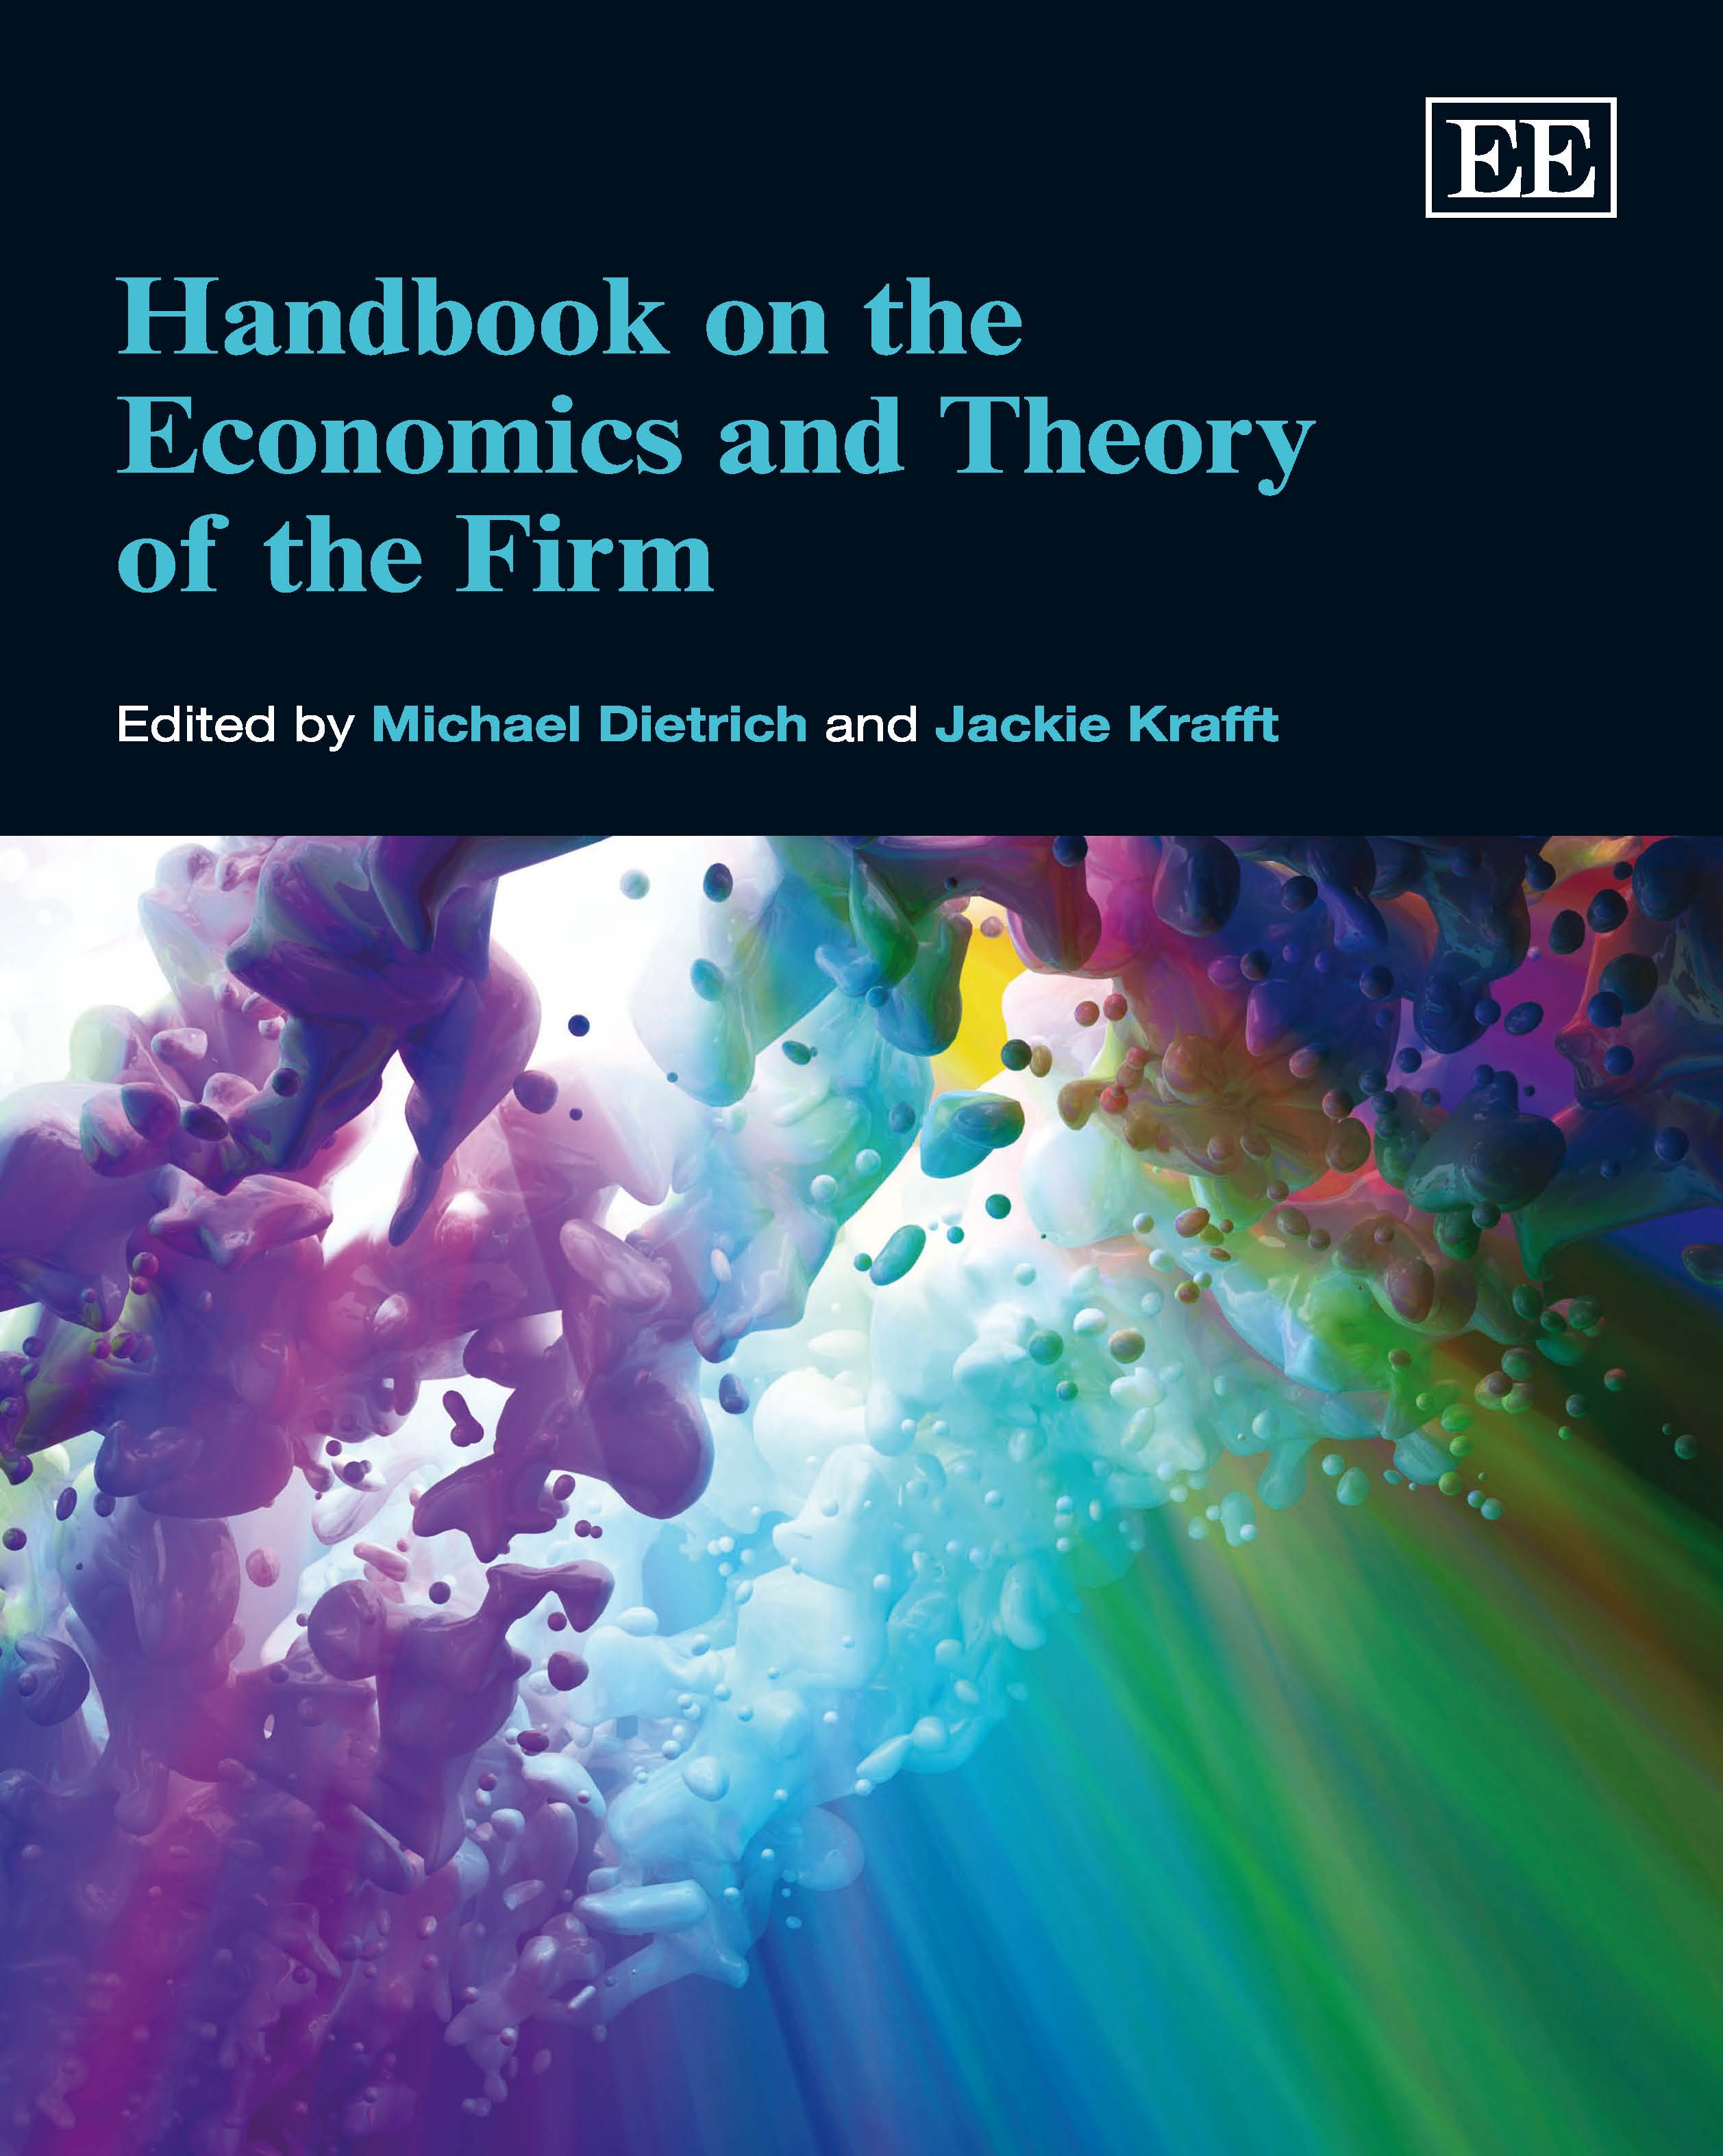 Download Ebook Handbook on the Economics and Theory of the Firm by Michael Dietrich Pdf